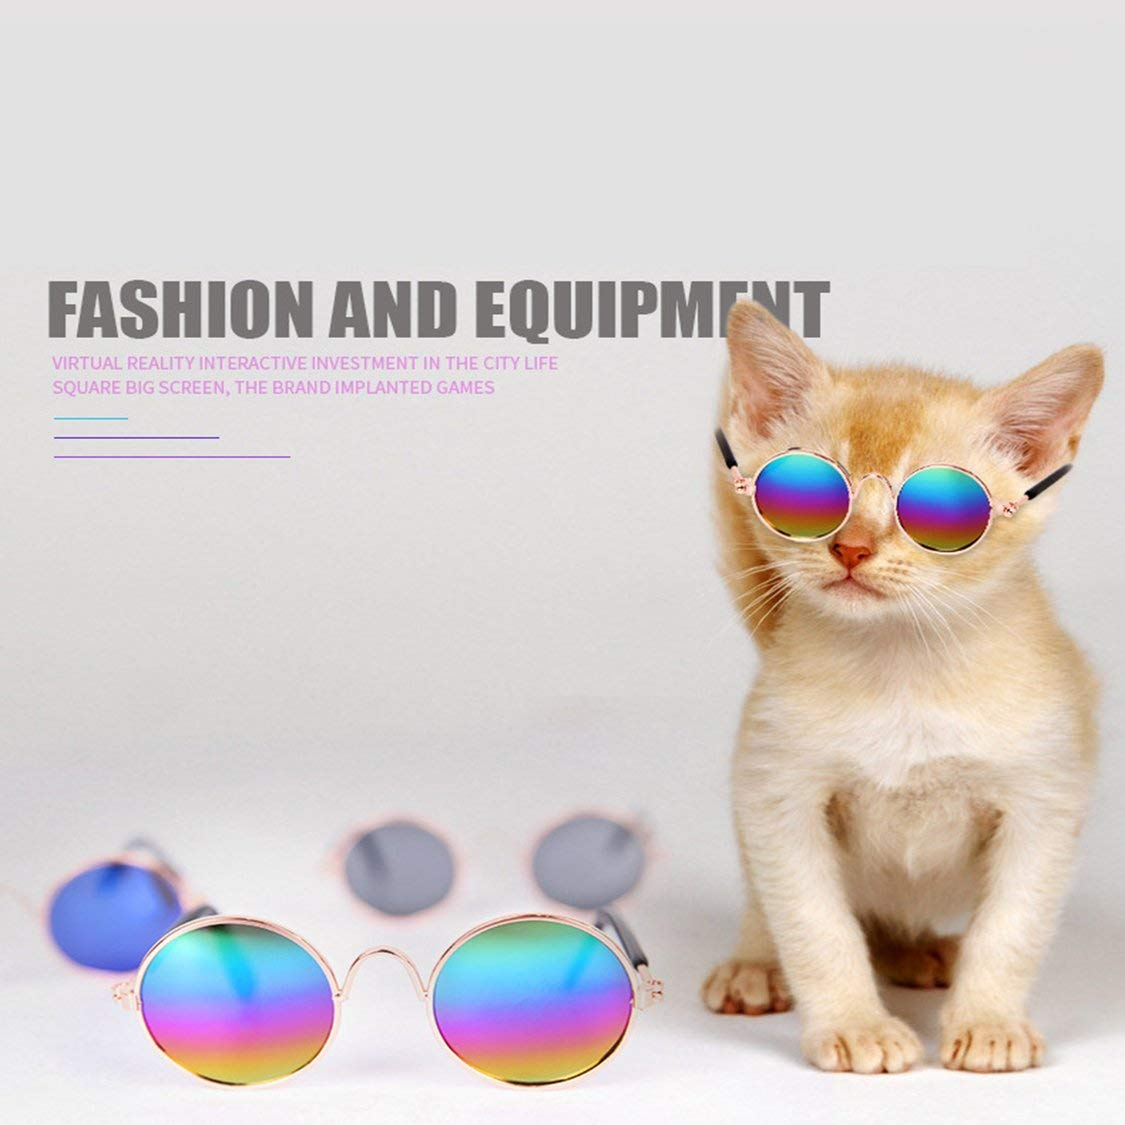 Colorful Reflective Fashionable Pets Cats Metal Frame Sunglasses Windproof Pets Eye Wear UV Protect Sun-Resistant Cats Sunglasses Accessories